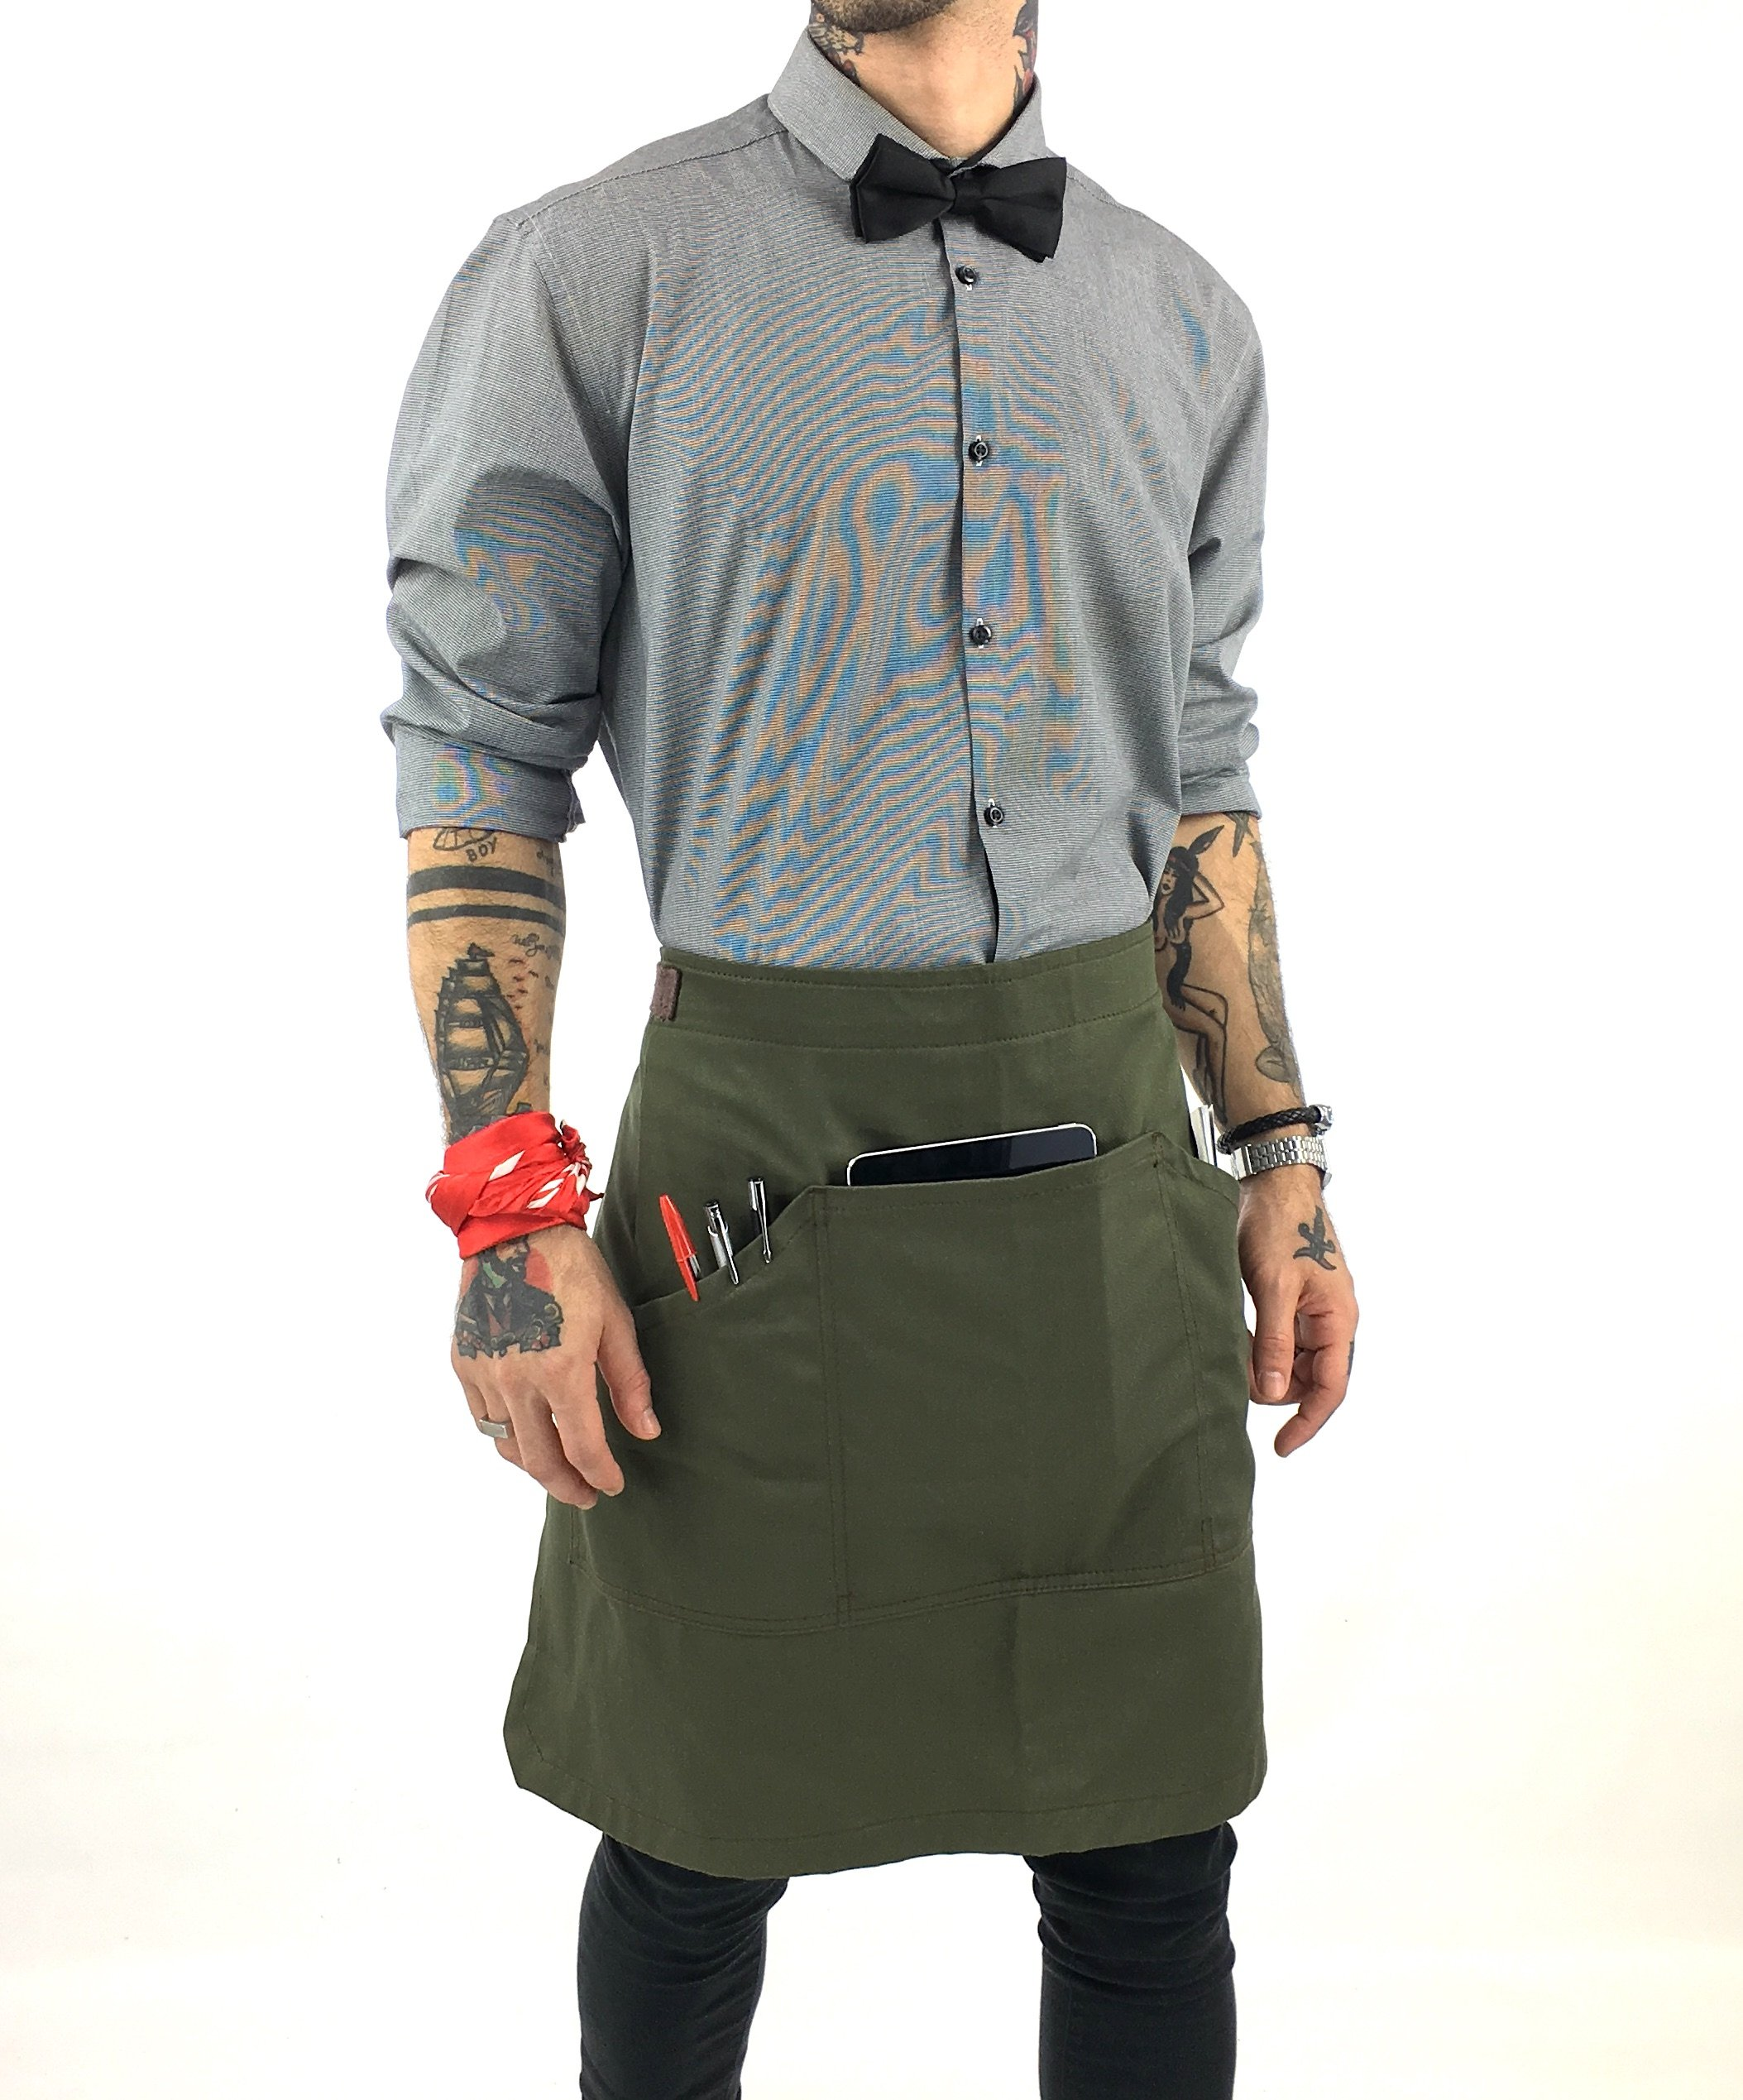 Under NY Sky Half Army Green Apron with Durable Twill – Bistro Apron, Waist Apron adjustable for Men and Women – Professional Barista, Bartender, Mixologist, Florist, Server Aprons